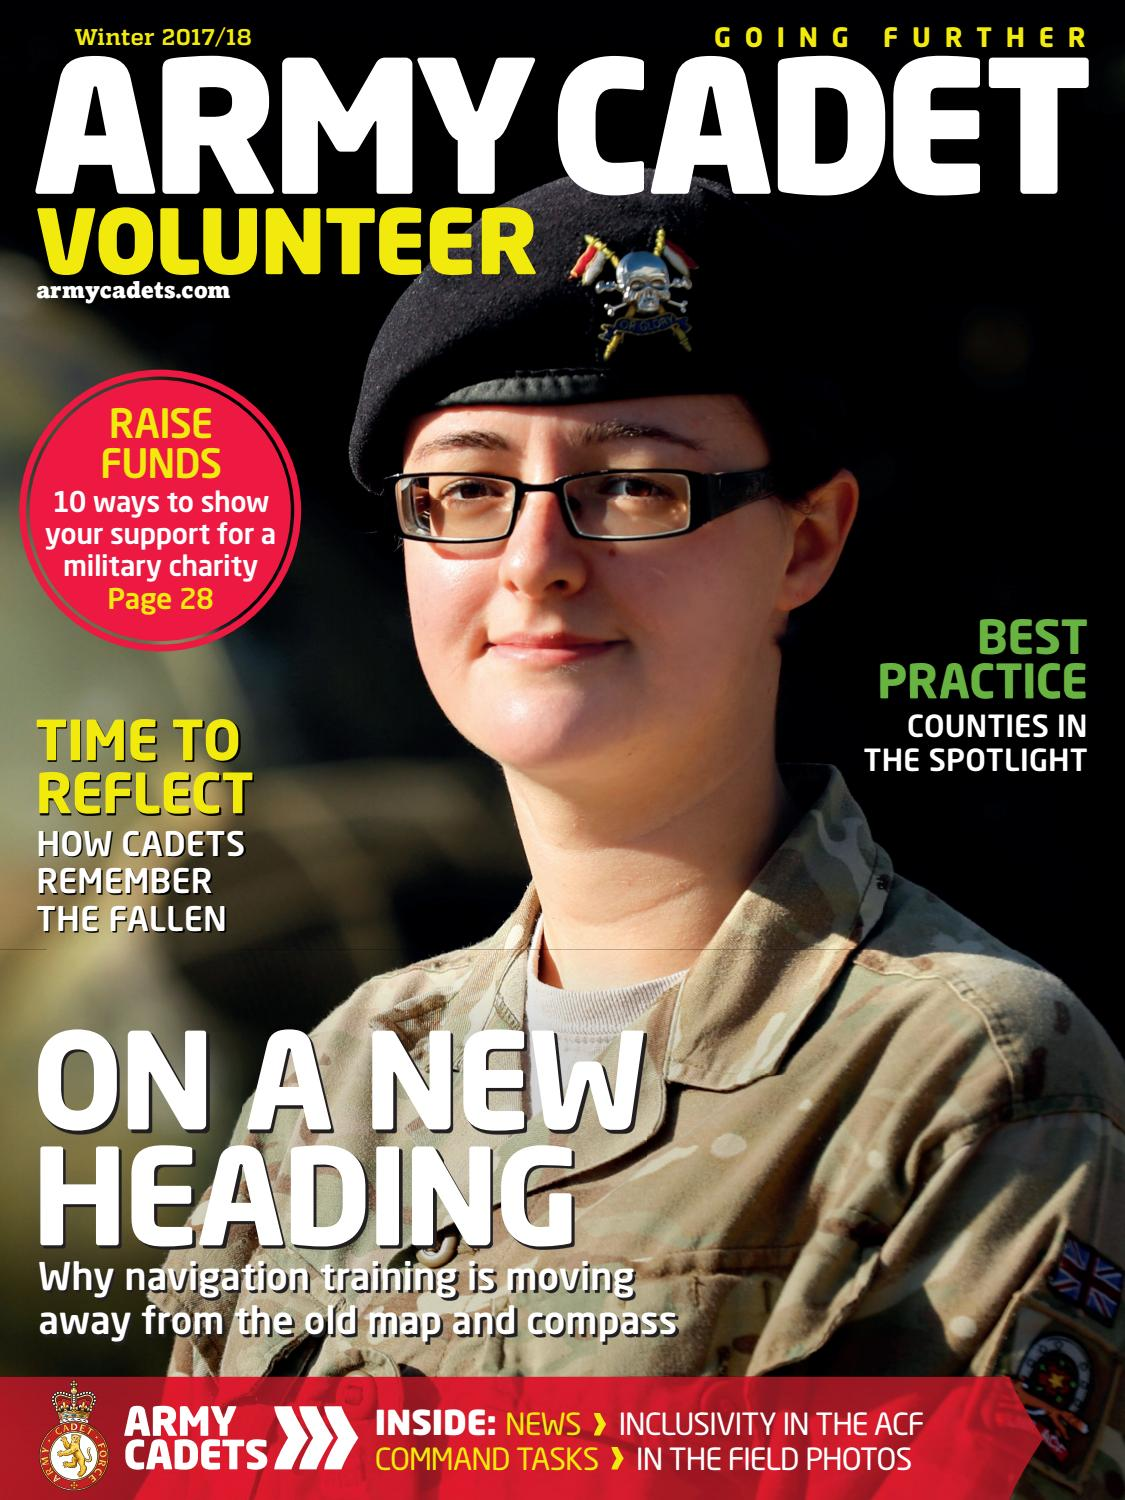 Afx Army Cadets army cadet volunteer winter 2017 / 18army cadets - issuu